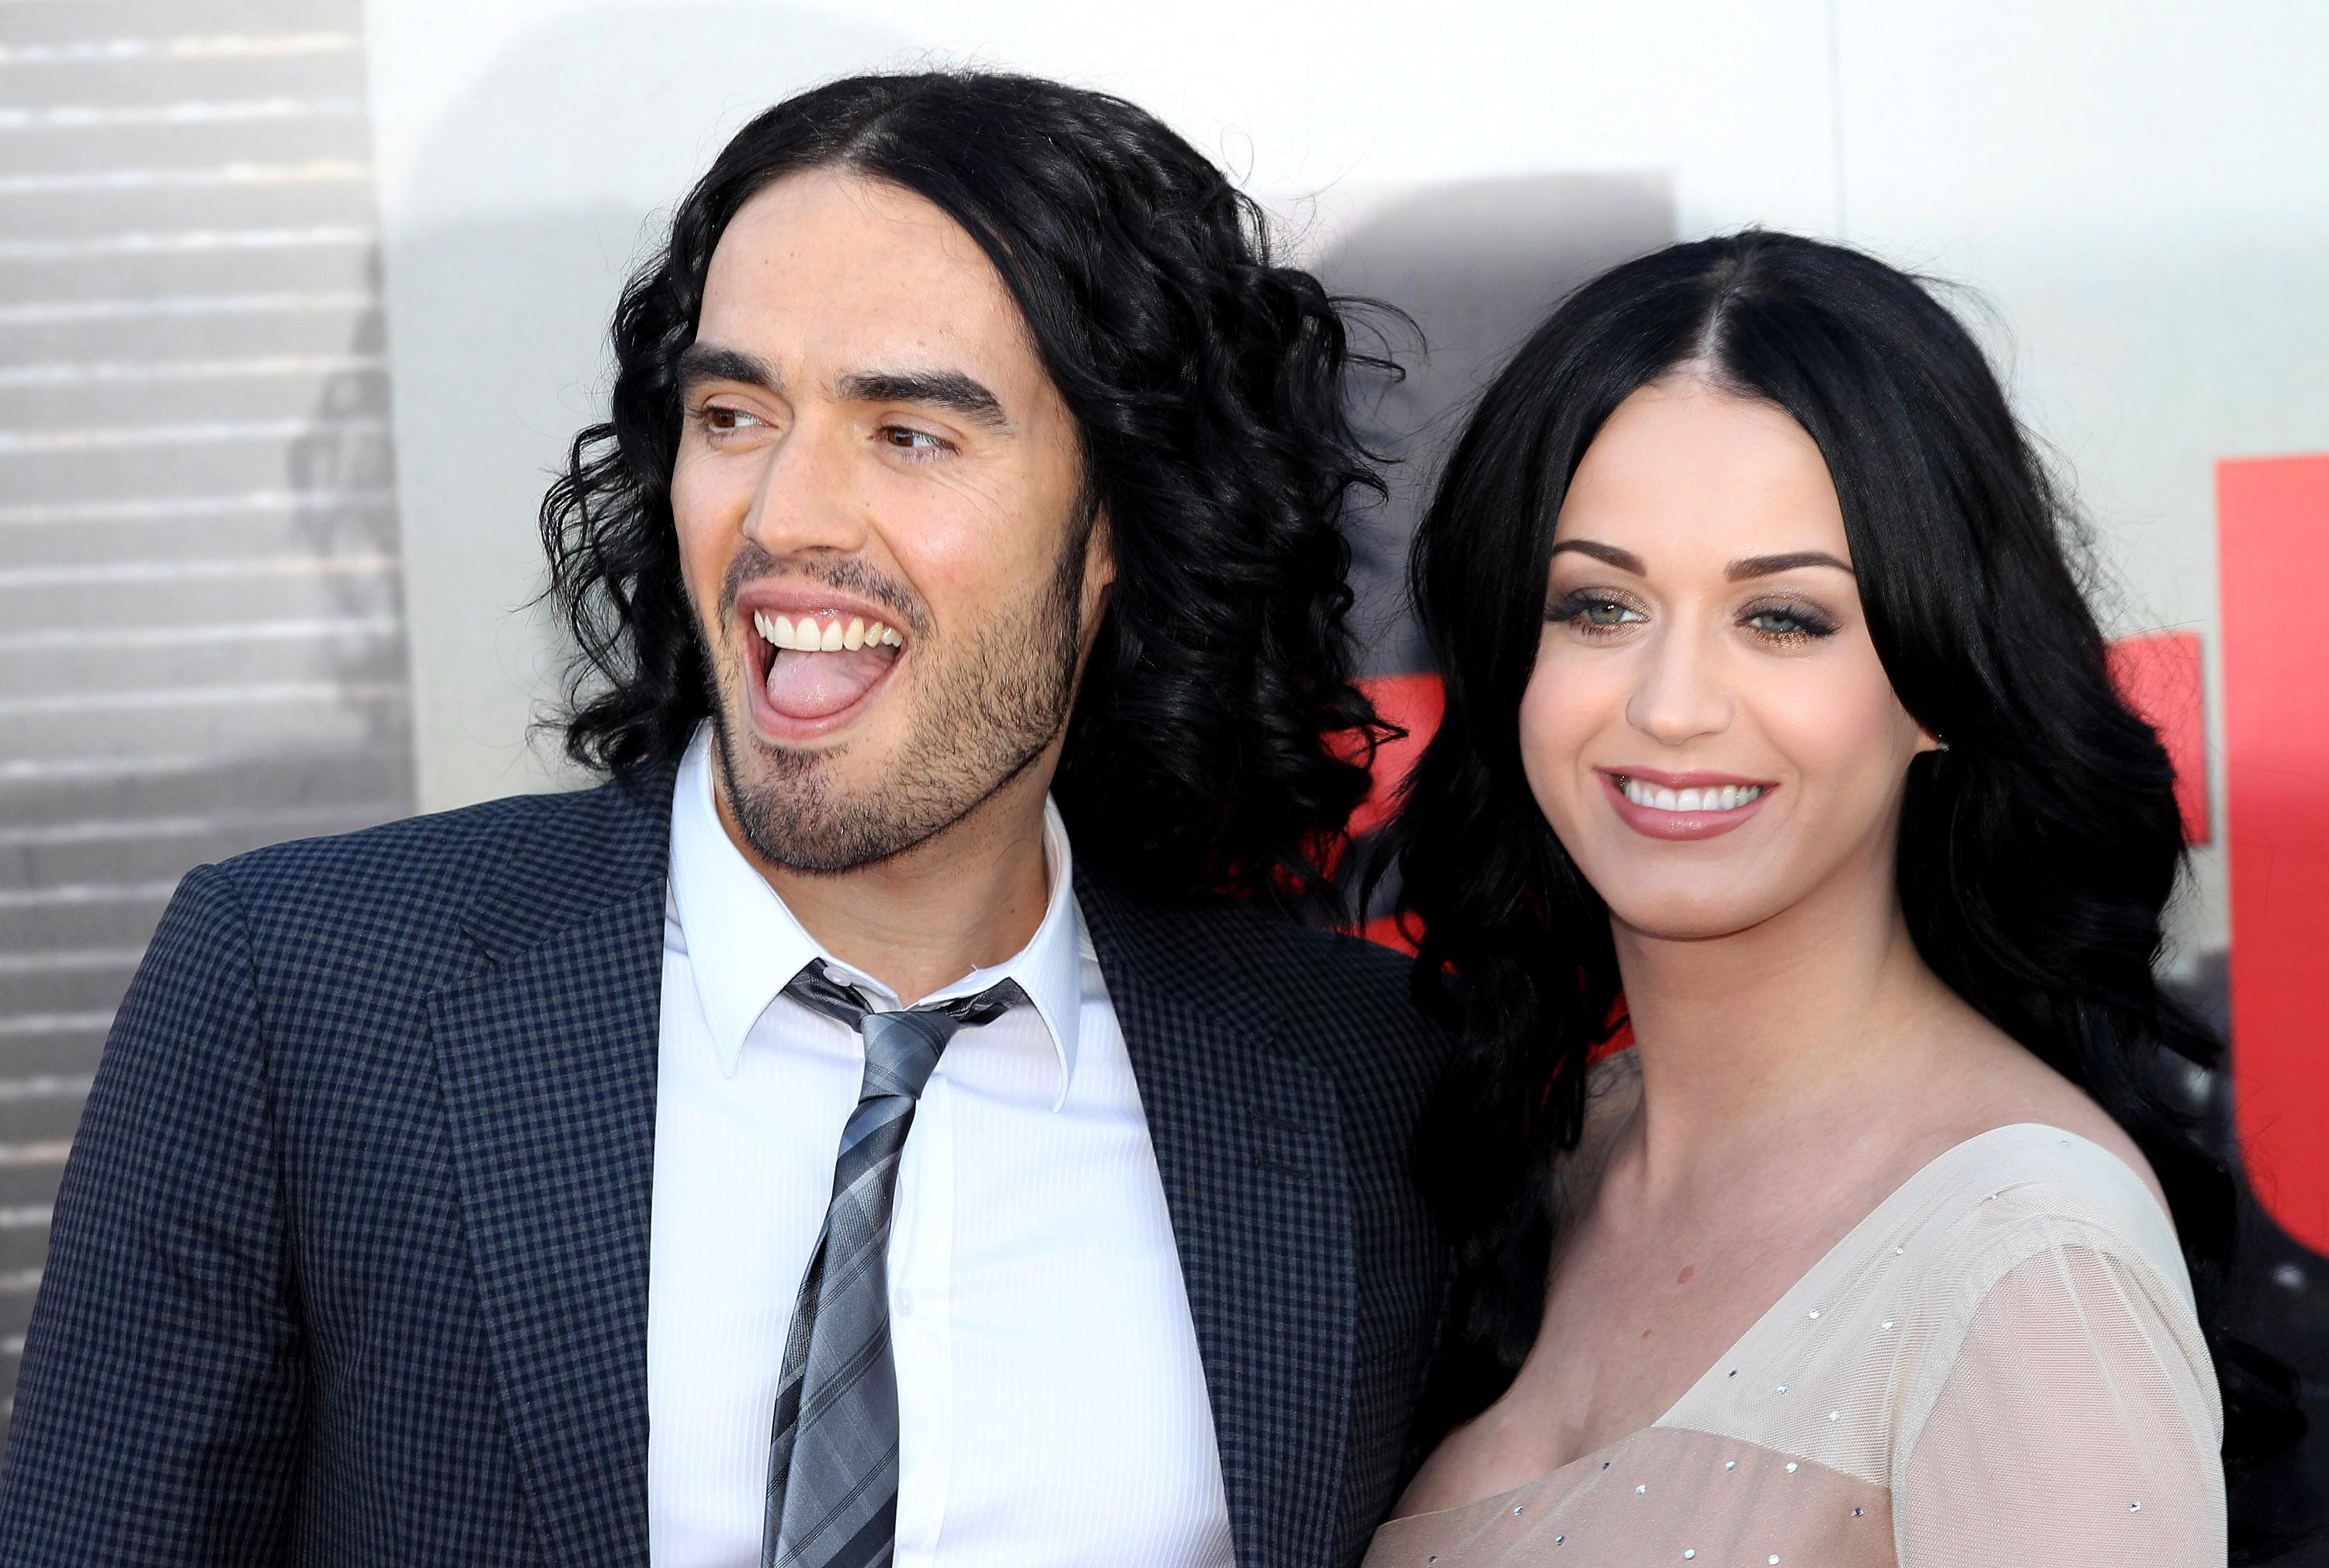 katy-perry-russell-brand-engagement-1531345776887-1531345779817.jpg